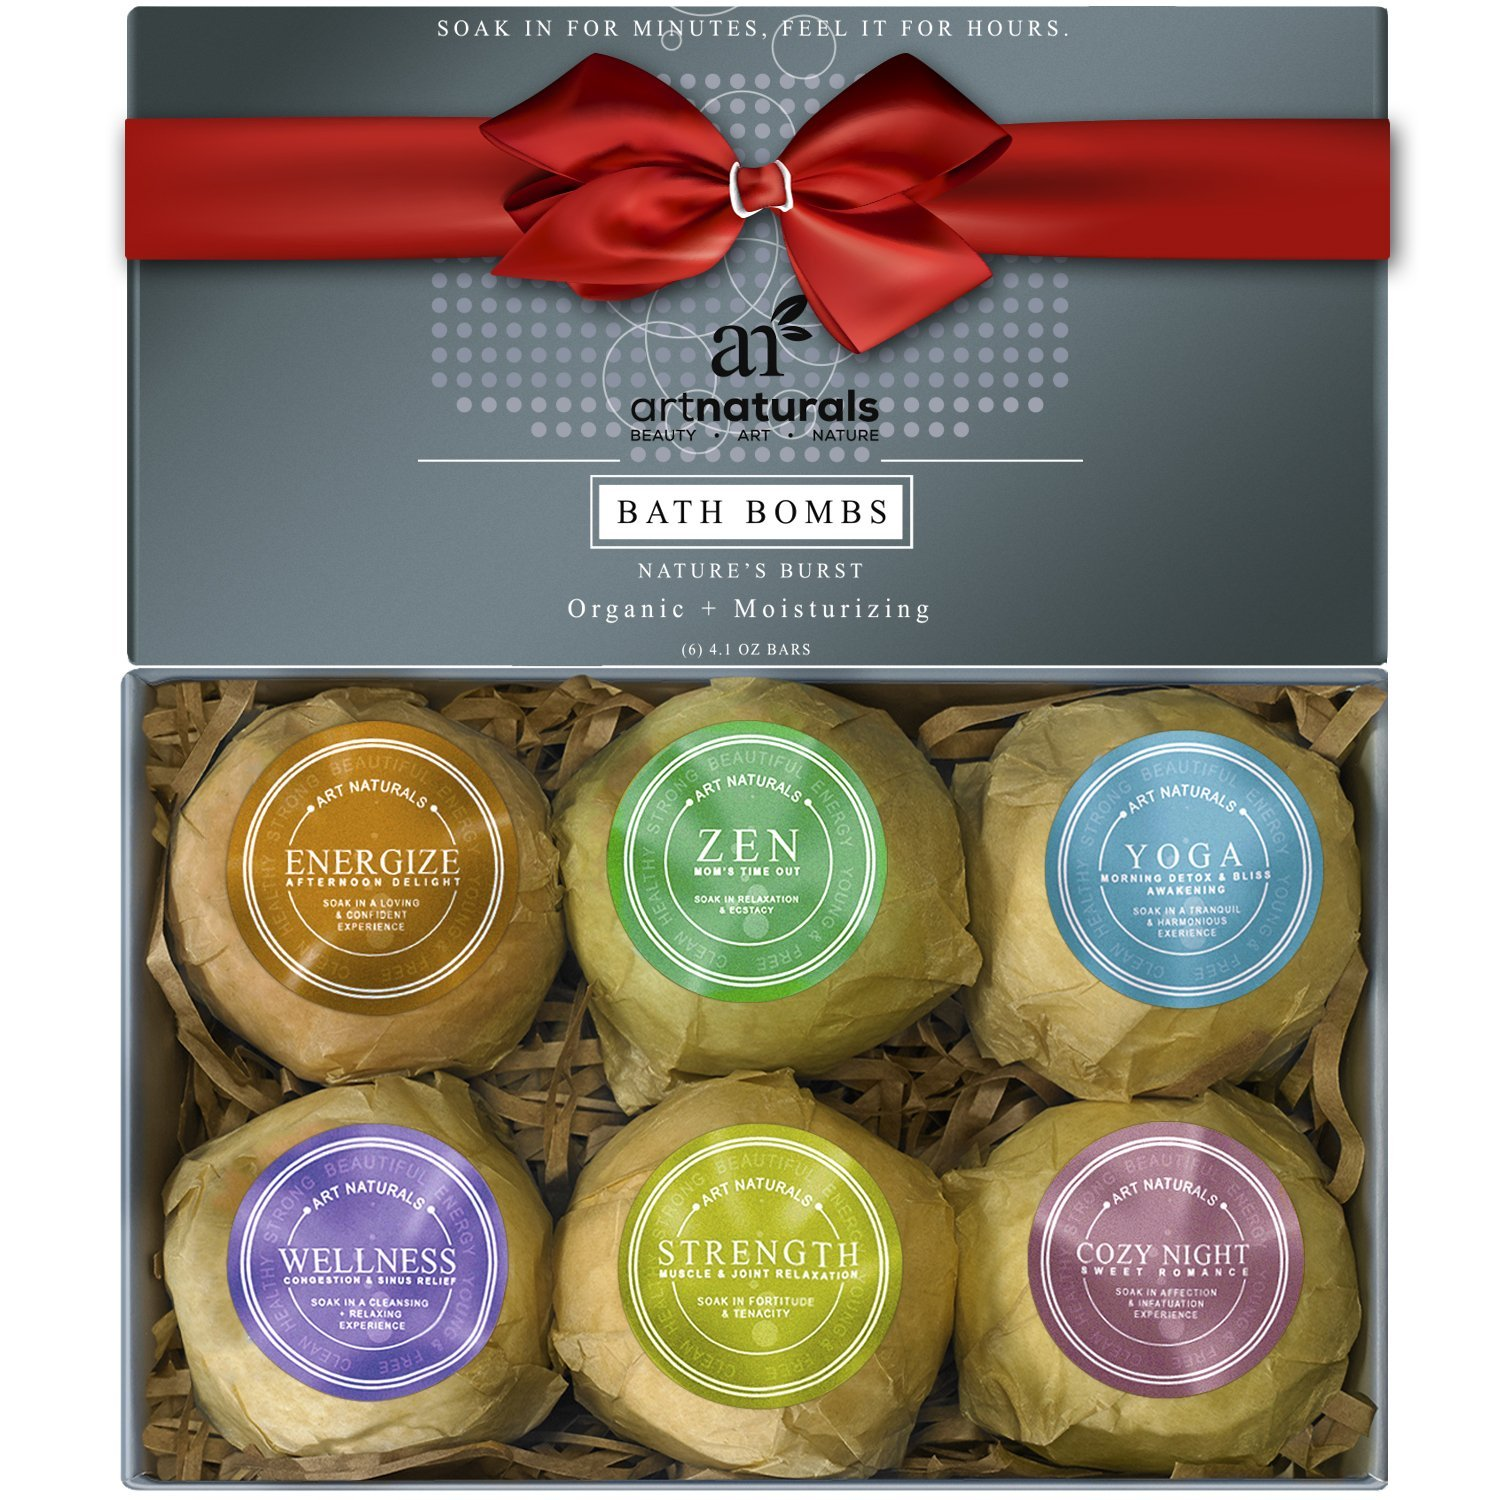 ArtNaturals Bath Bombs Gift Set